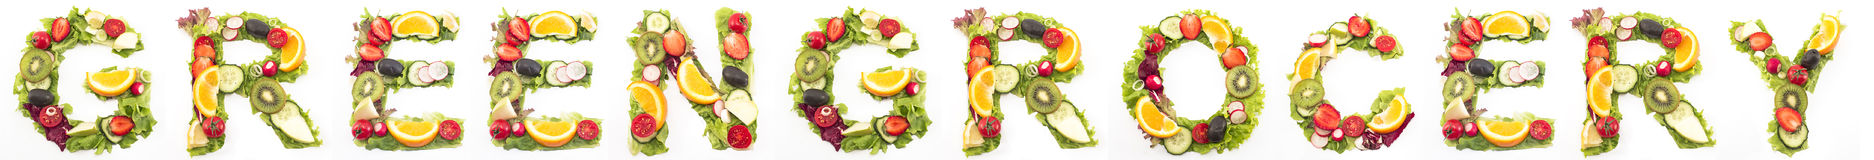 Word greengrocery made of salad and fruits Royalty Free Stock Image